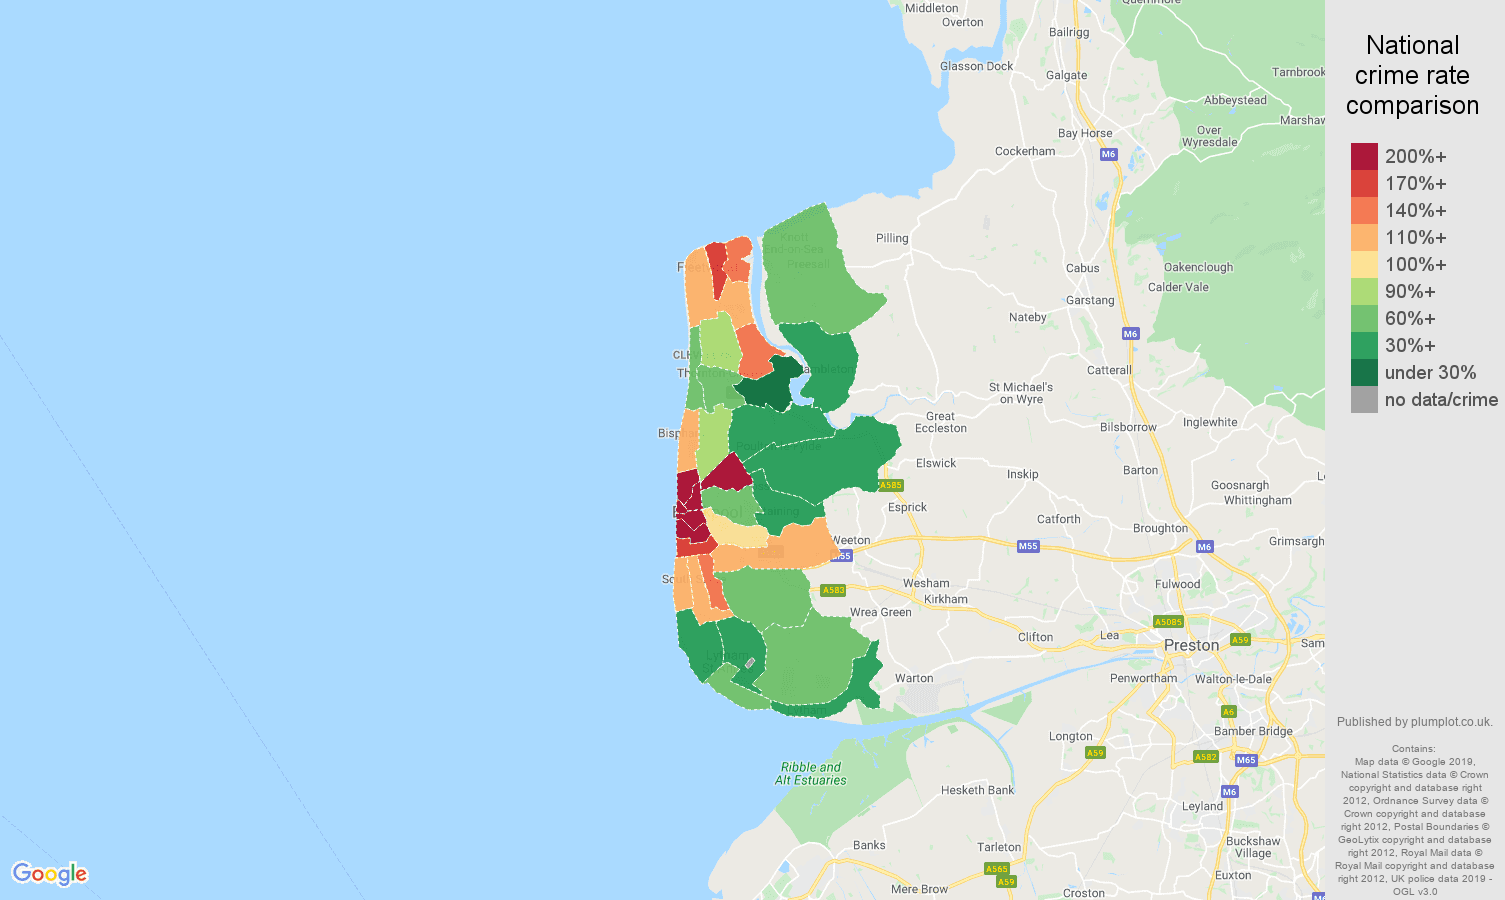 Blackpool other crime rate comparison map